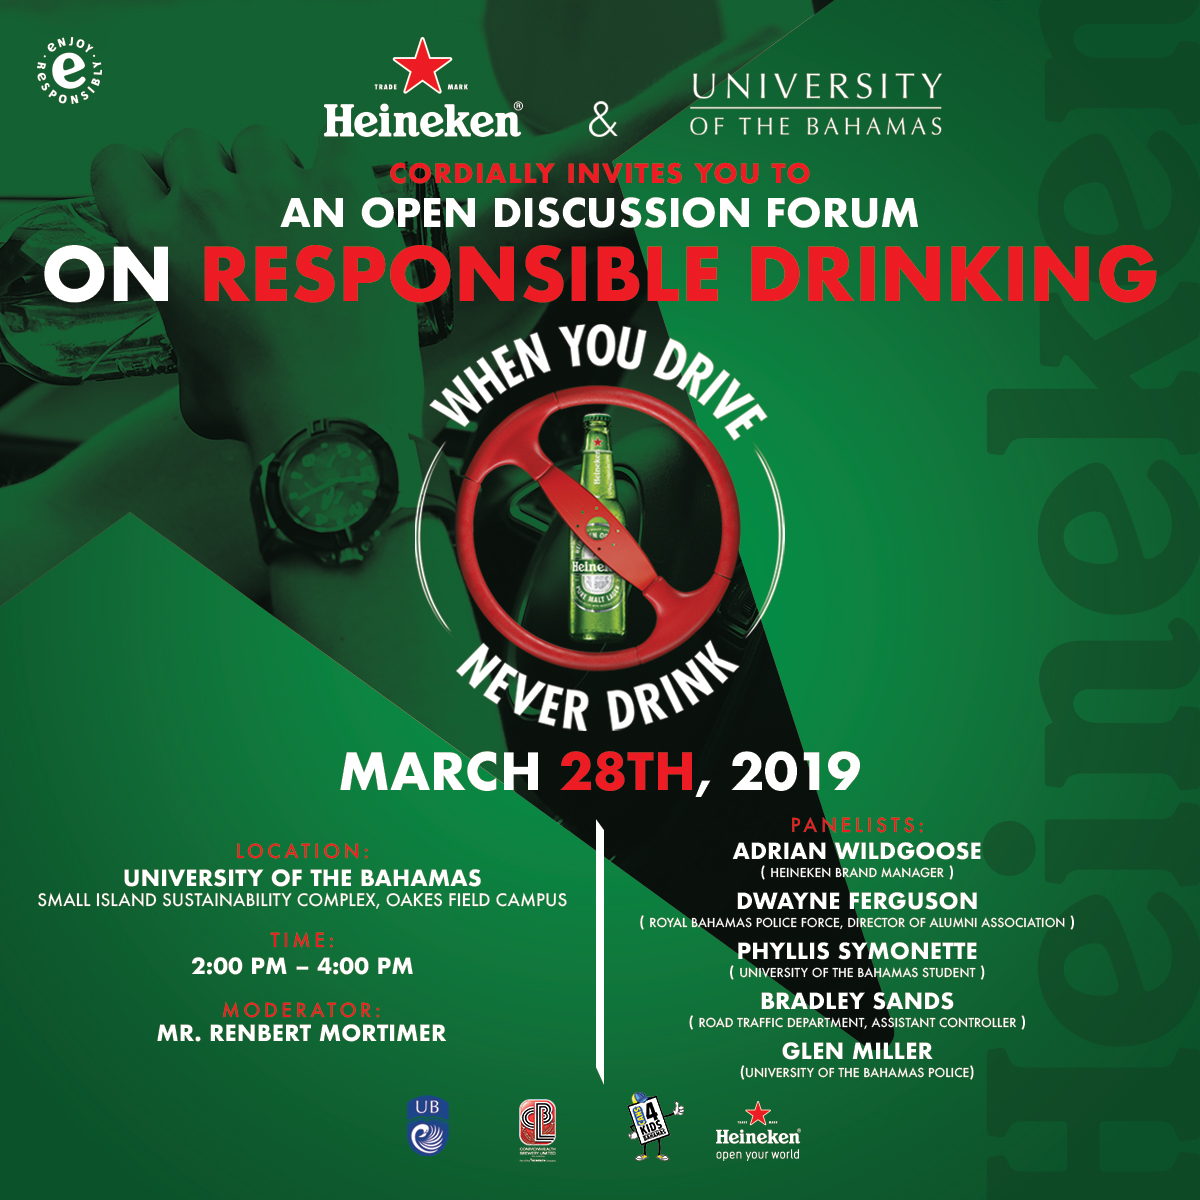 Heineken Forum on Drinking Responsibly